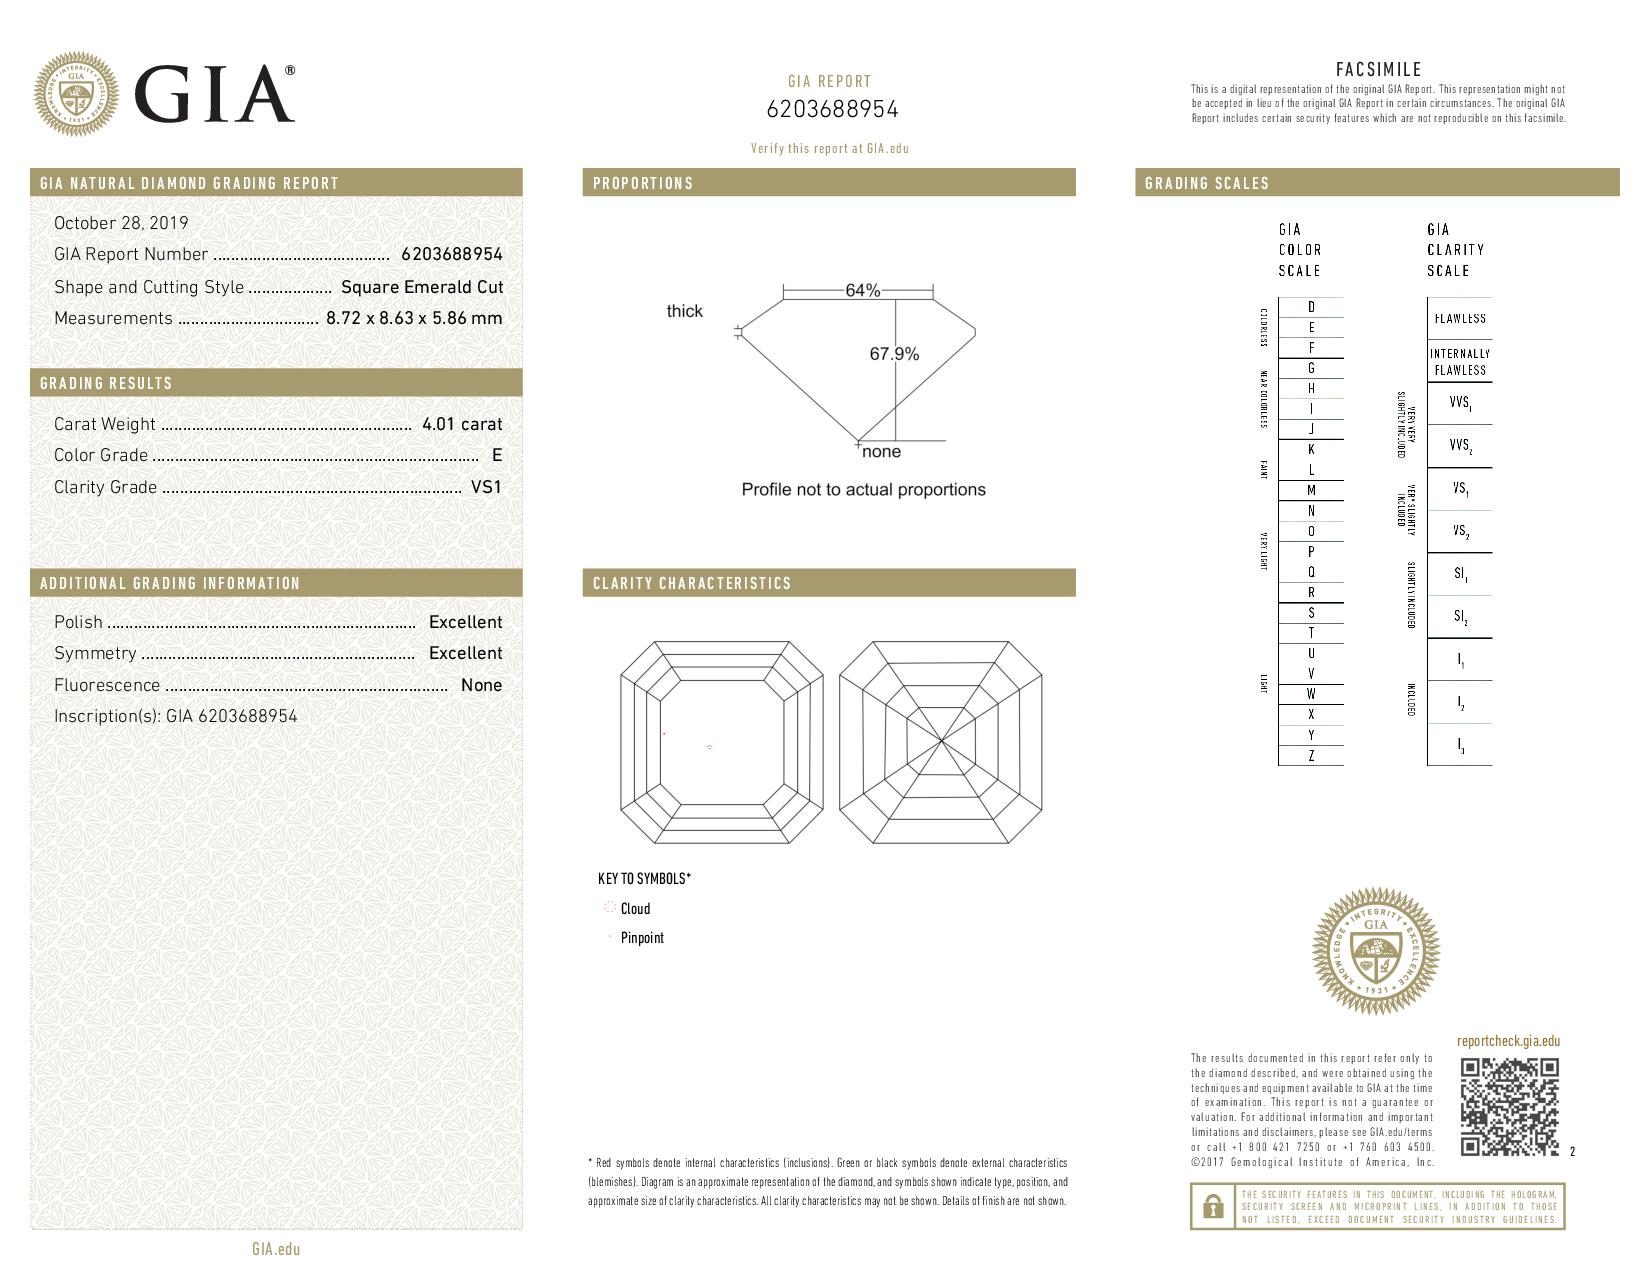 This is a 4.01 carat asscher shape, E color, VS1 clarity natural diamond accompanied by a GIA grading report.